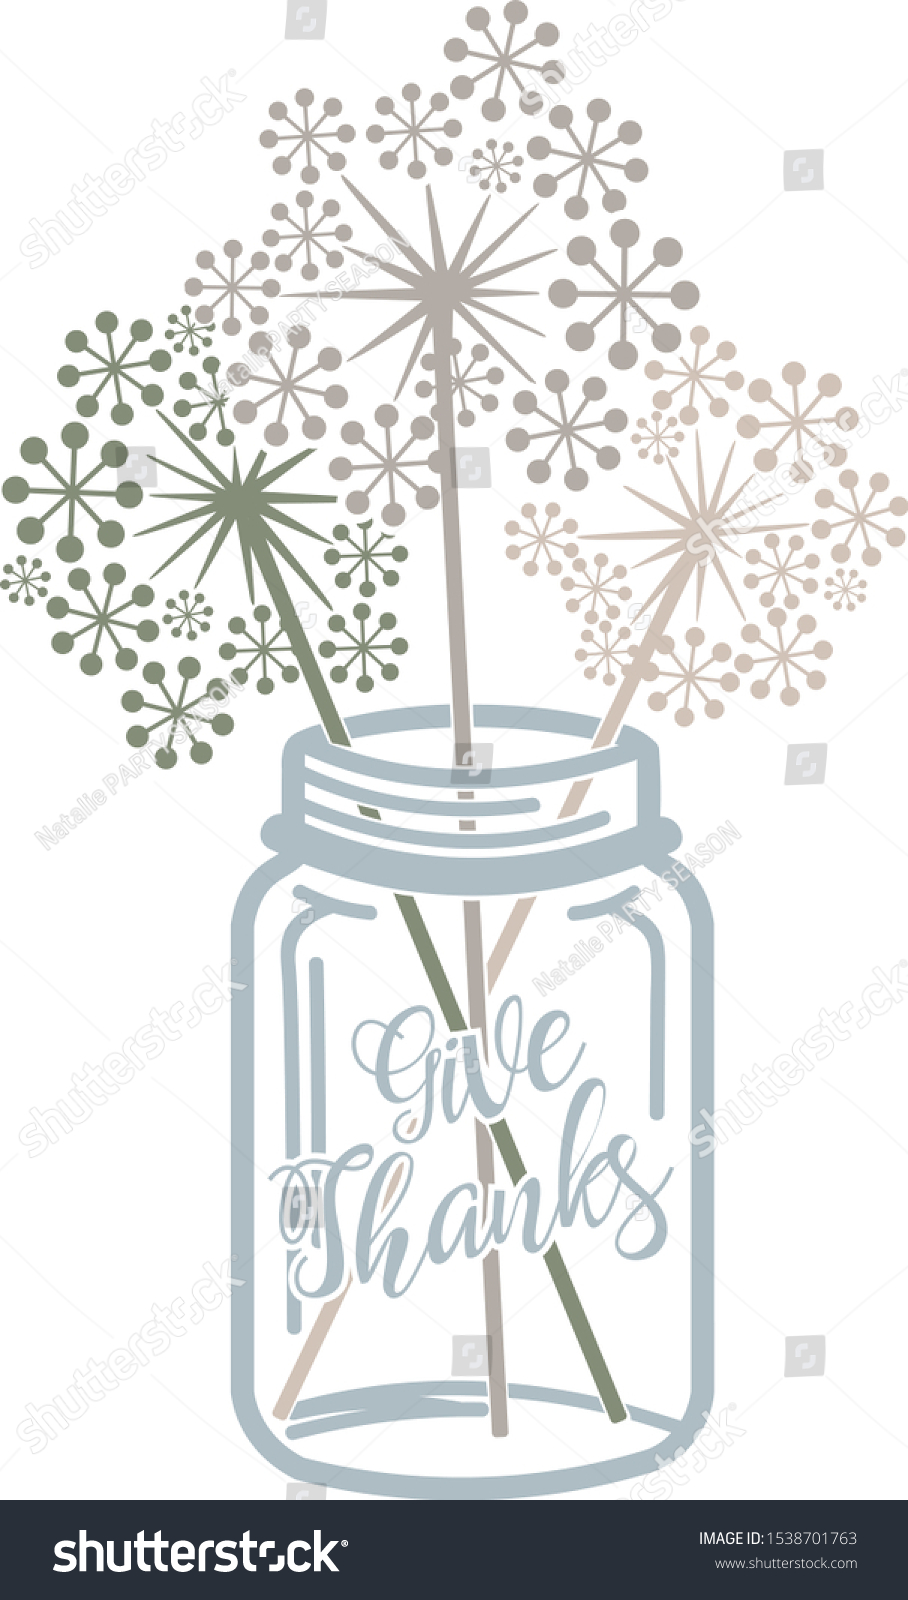 Give Thanks Digital Files Dandelions Clip Stock Vector Royalty Free 1538701763